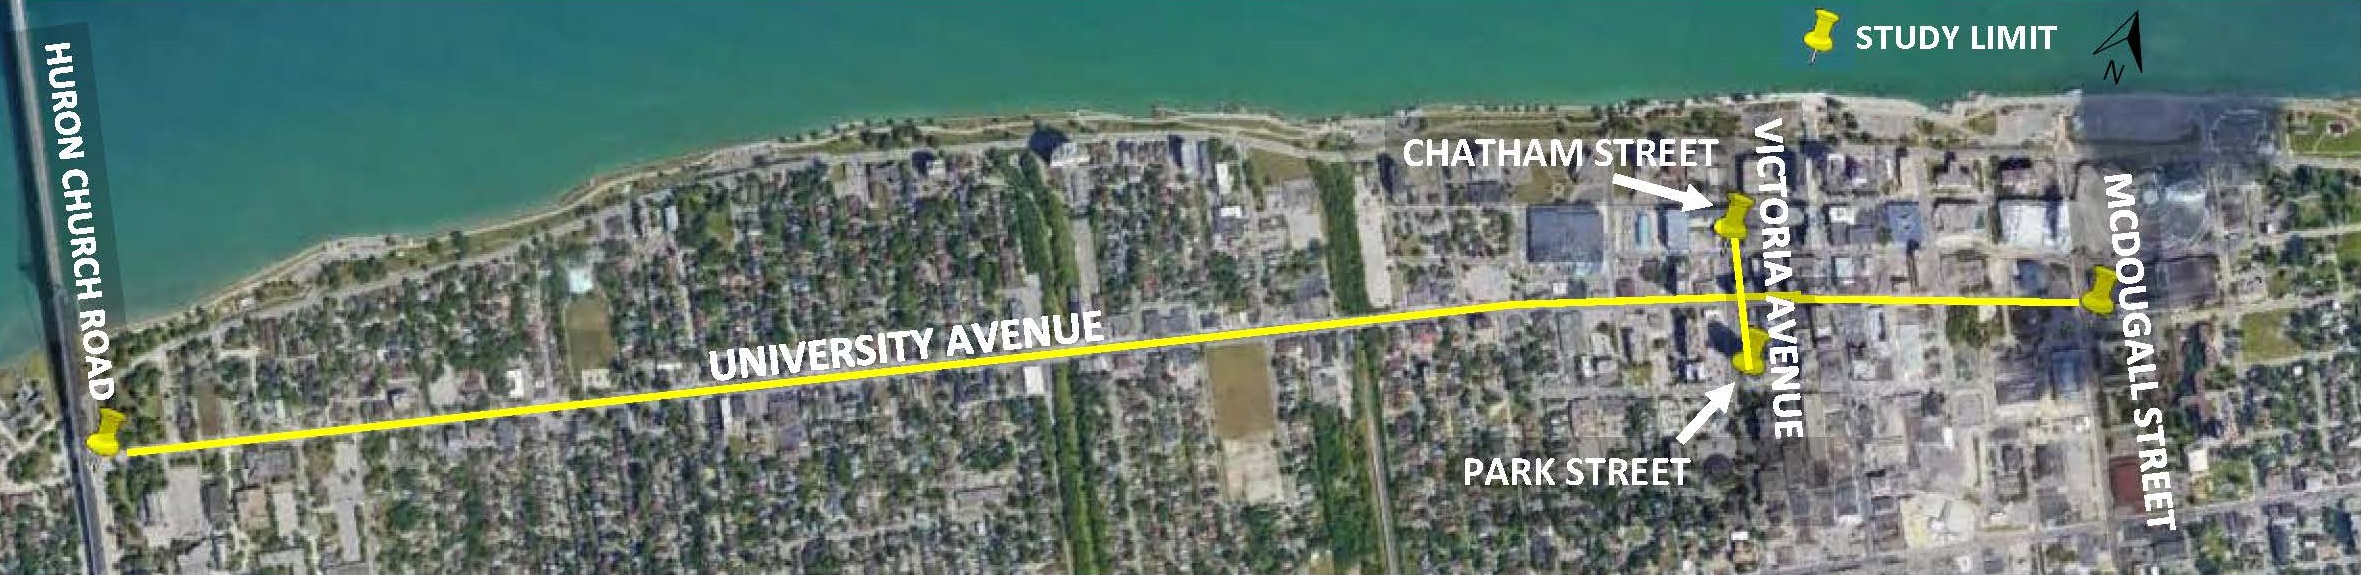 B917_Windsor University Ave EA_Study Area Map_e01.jpg